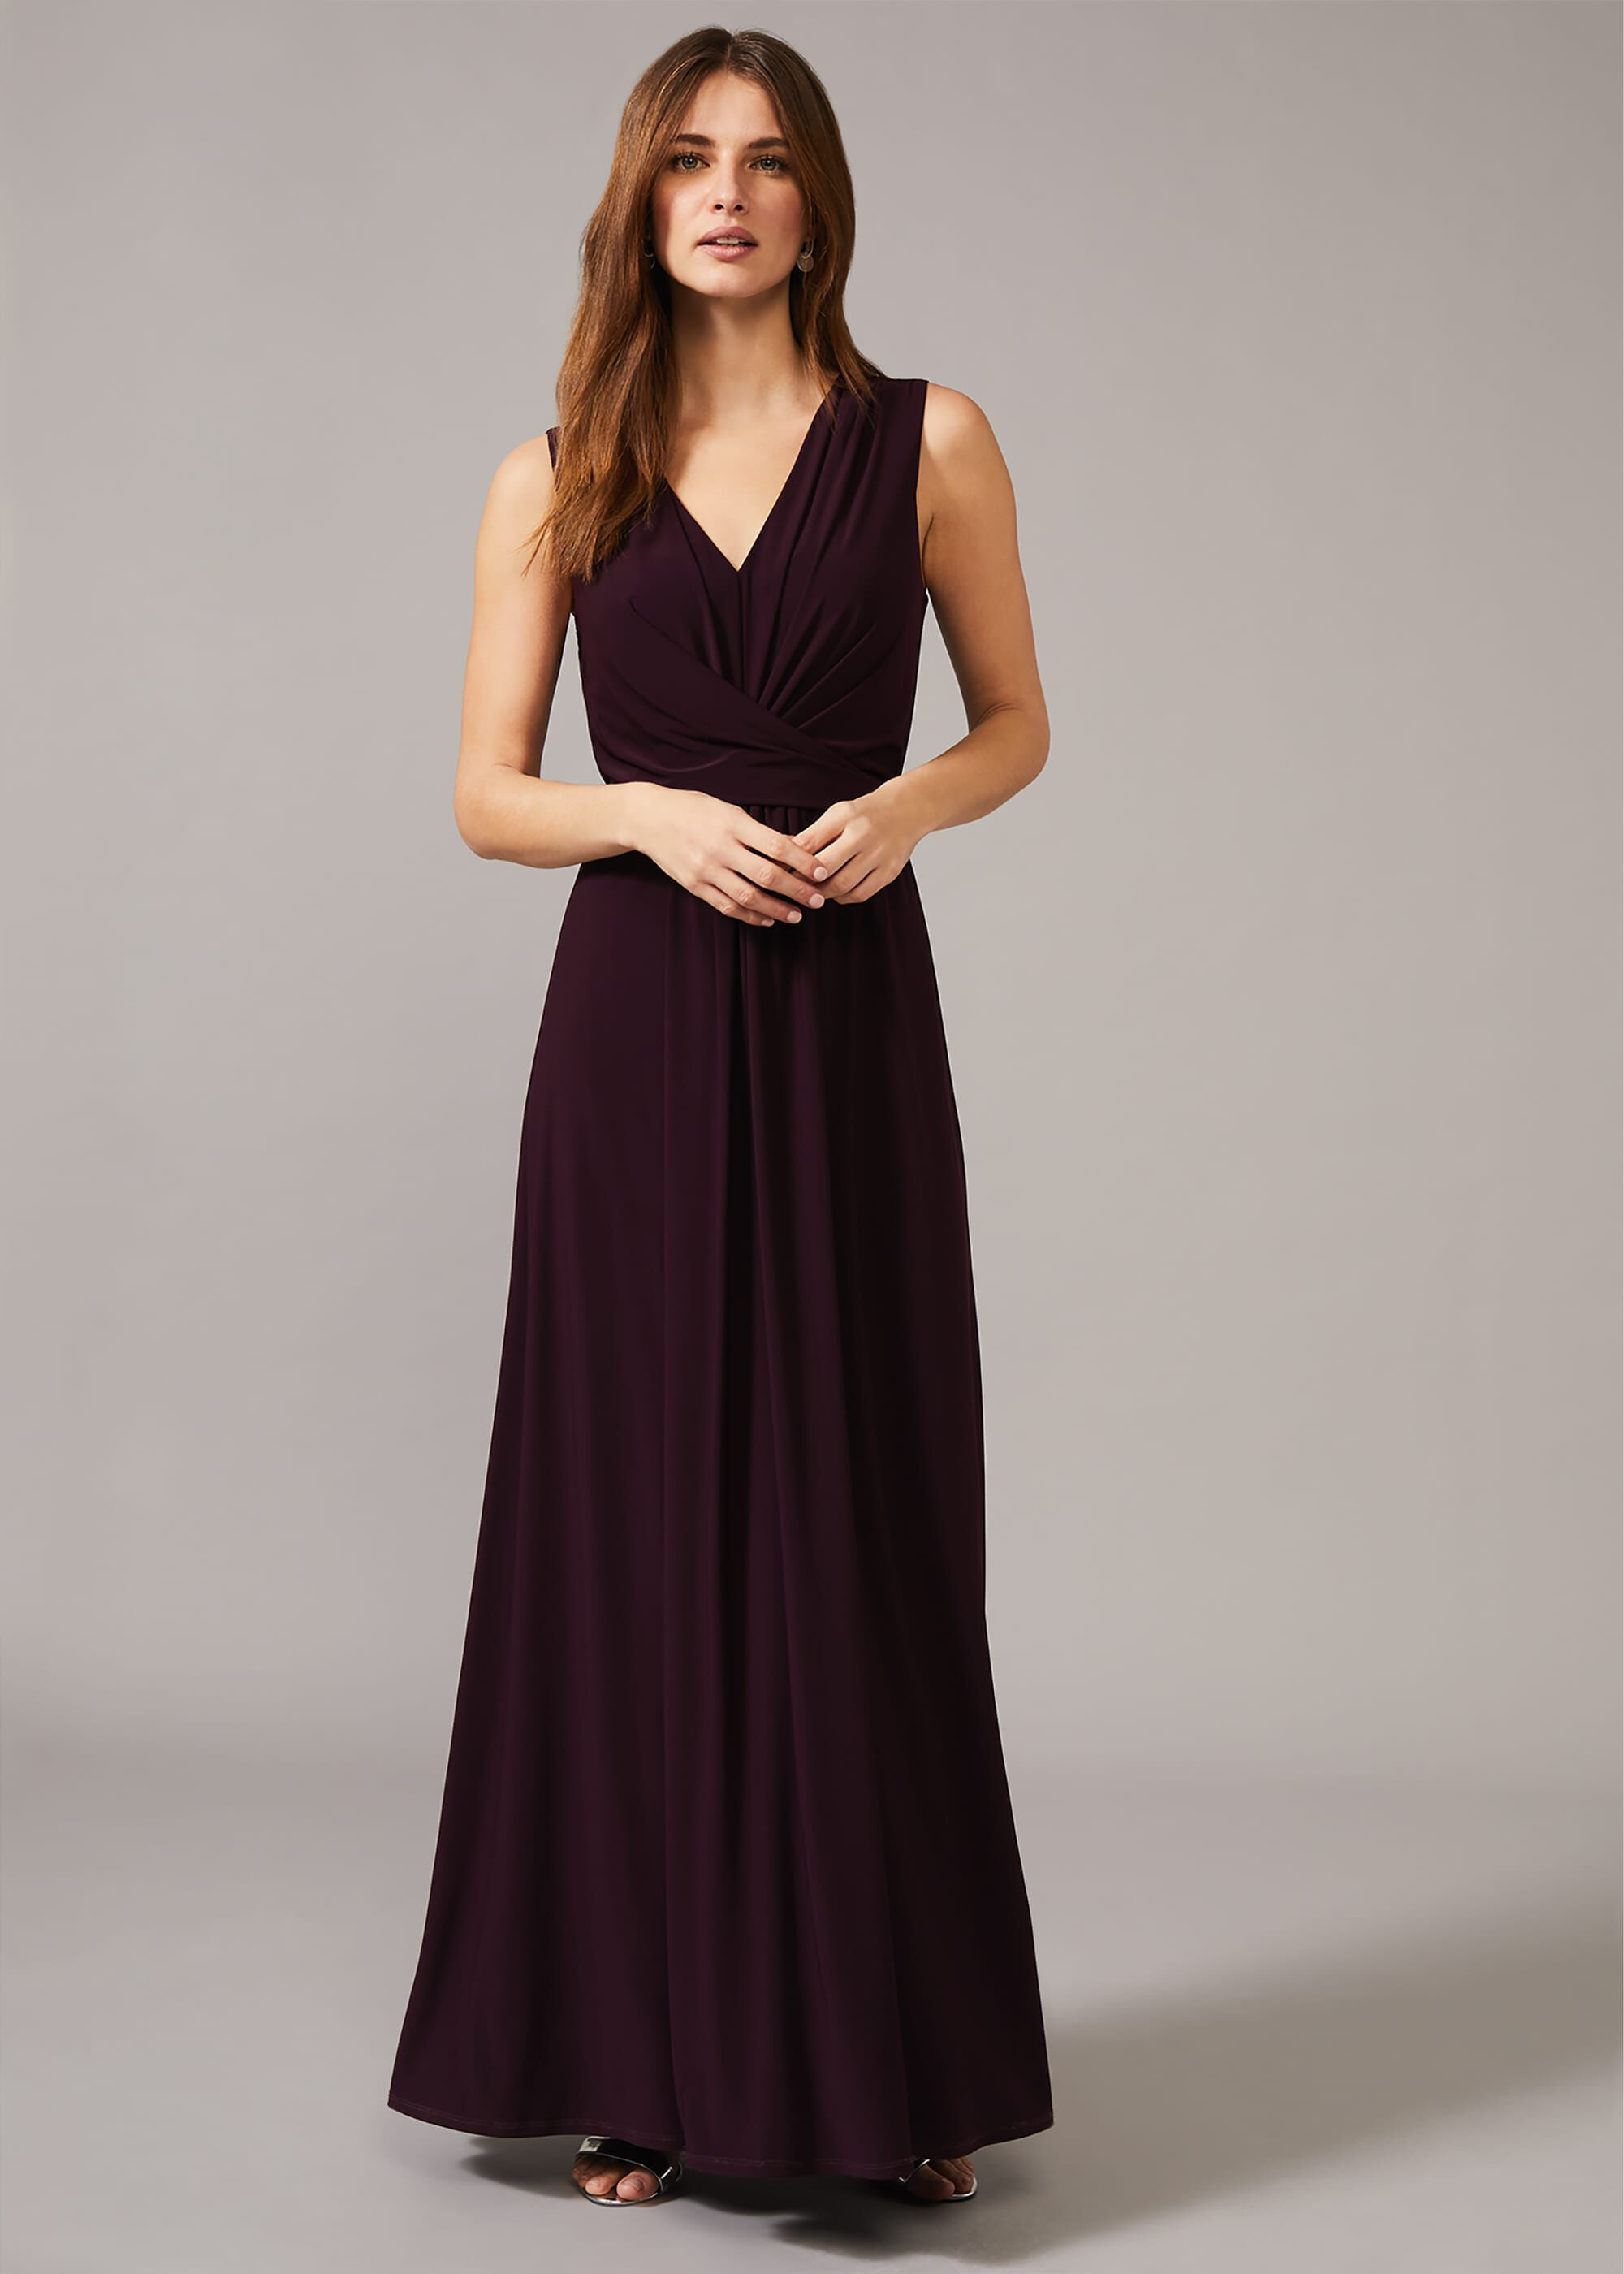 Phase Eight Althea Jersey Maxi Dress, Red, Occasion Dress